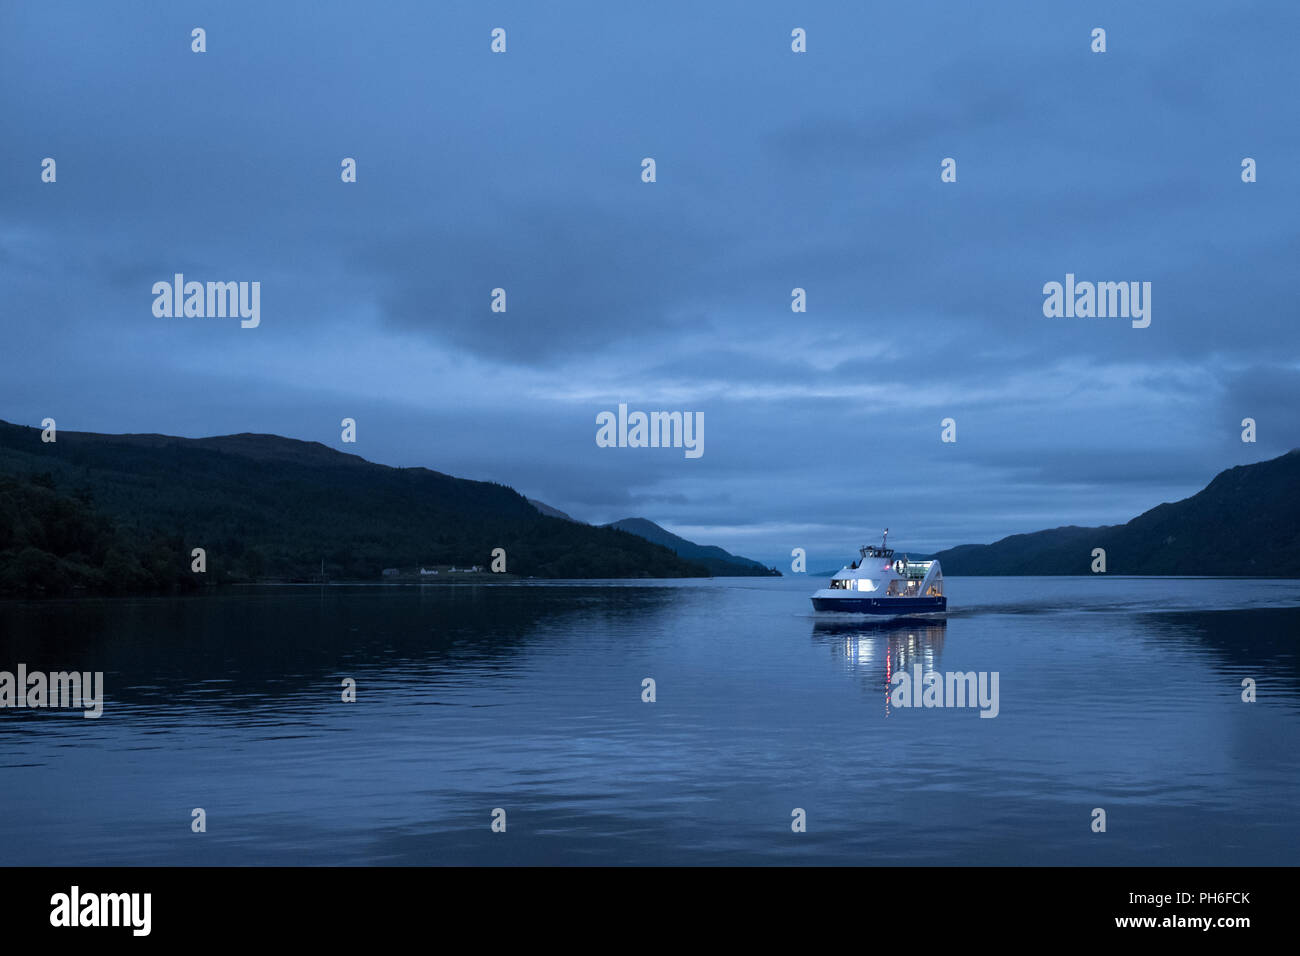 Loch Ness, central Highlands of Scotland. Boat on the water at twilight. Photographed at Fort Augustus. - Stock Image